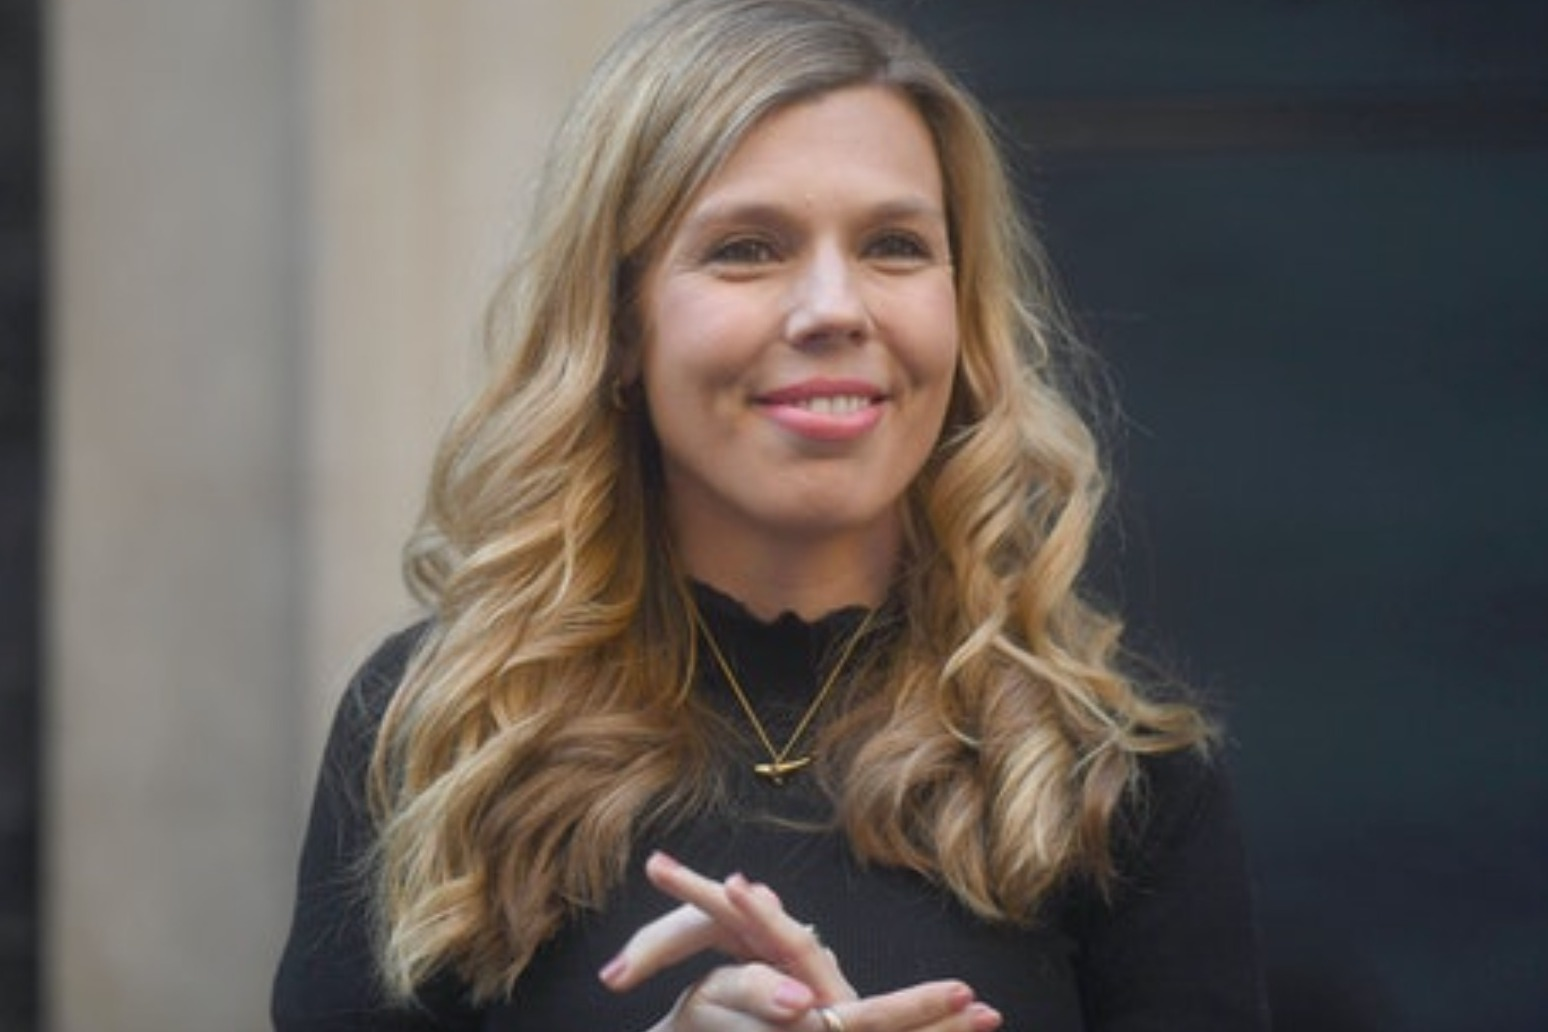 Carrie Symonds named Peta's 'person of the year'